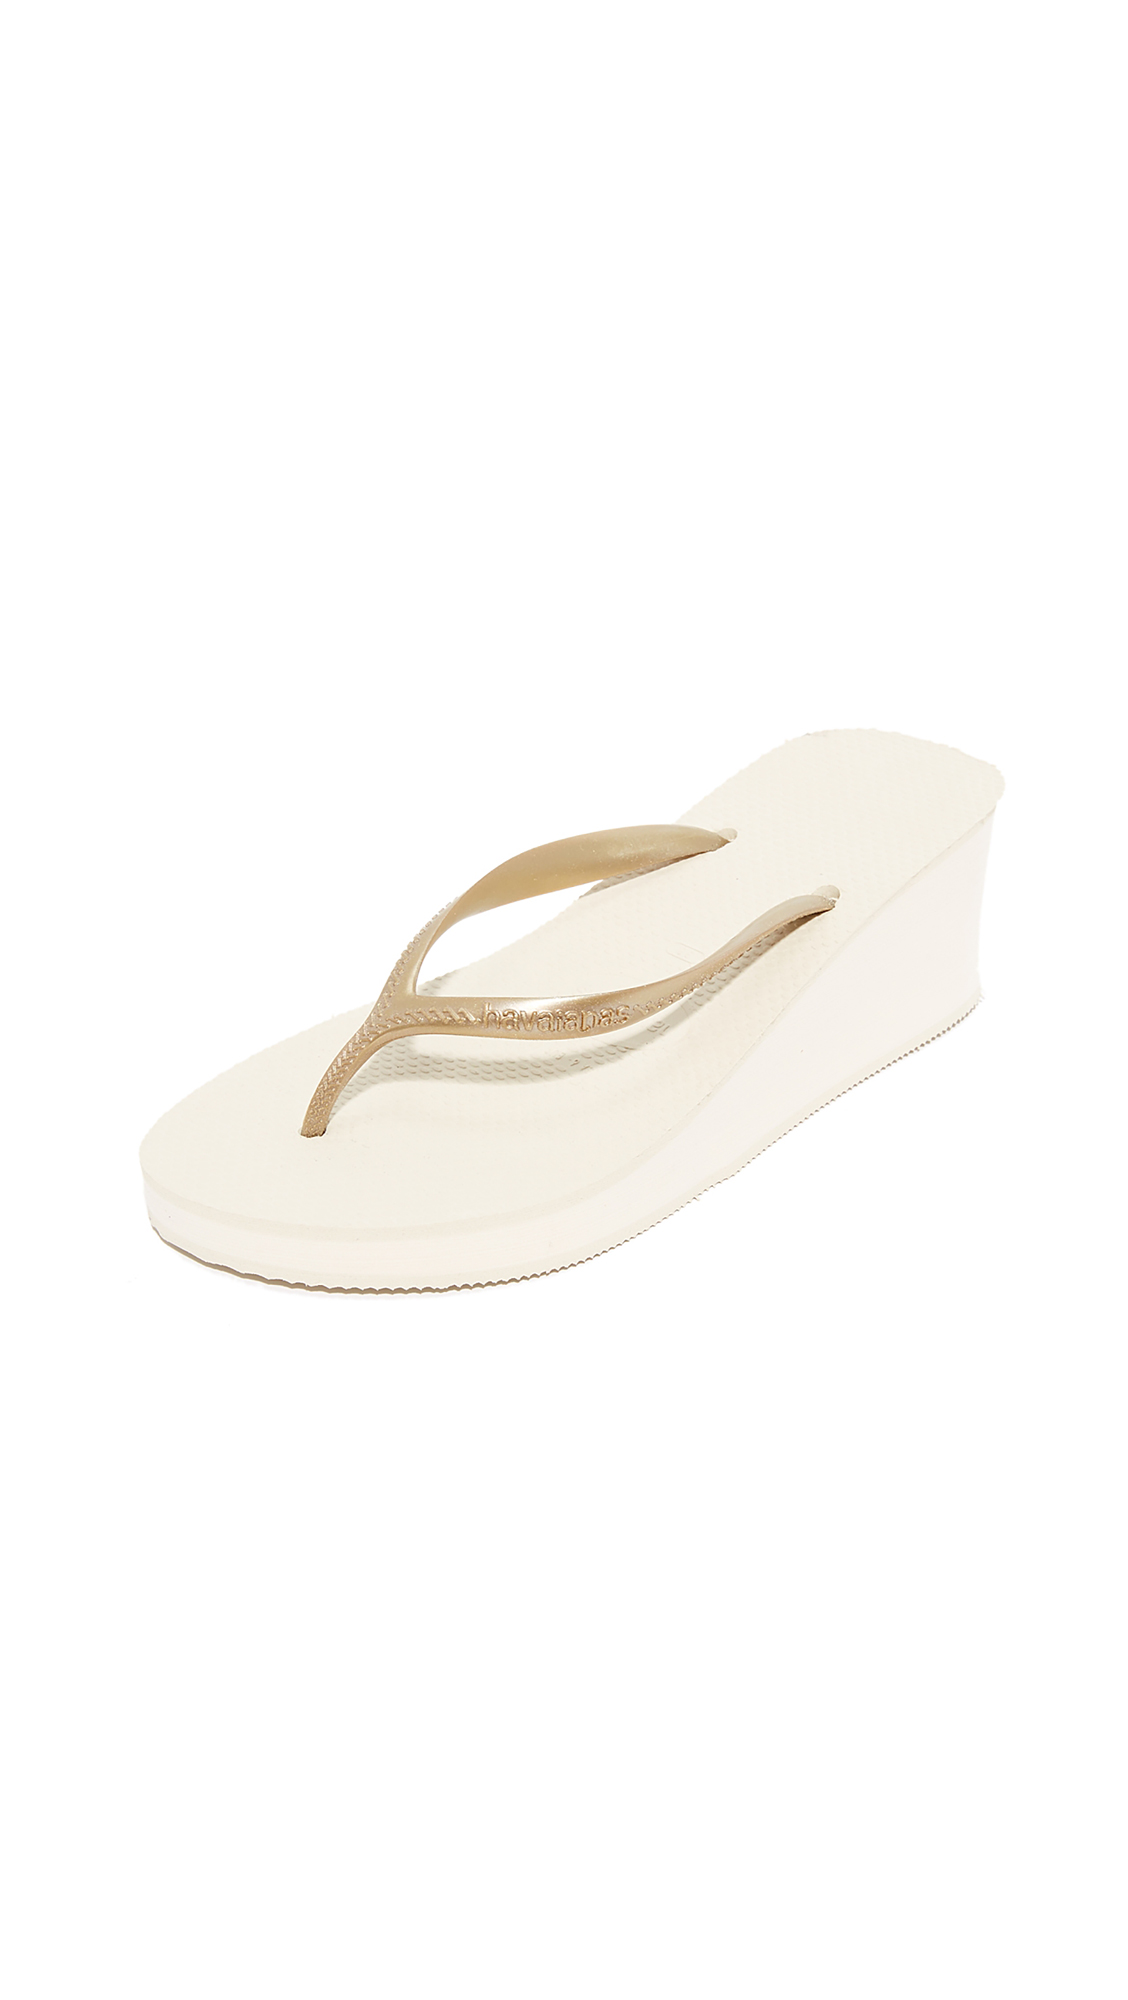 Havaianas High Fashion Wedge Sandals - Beige